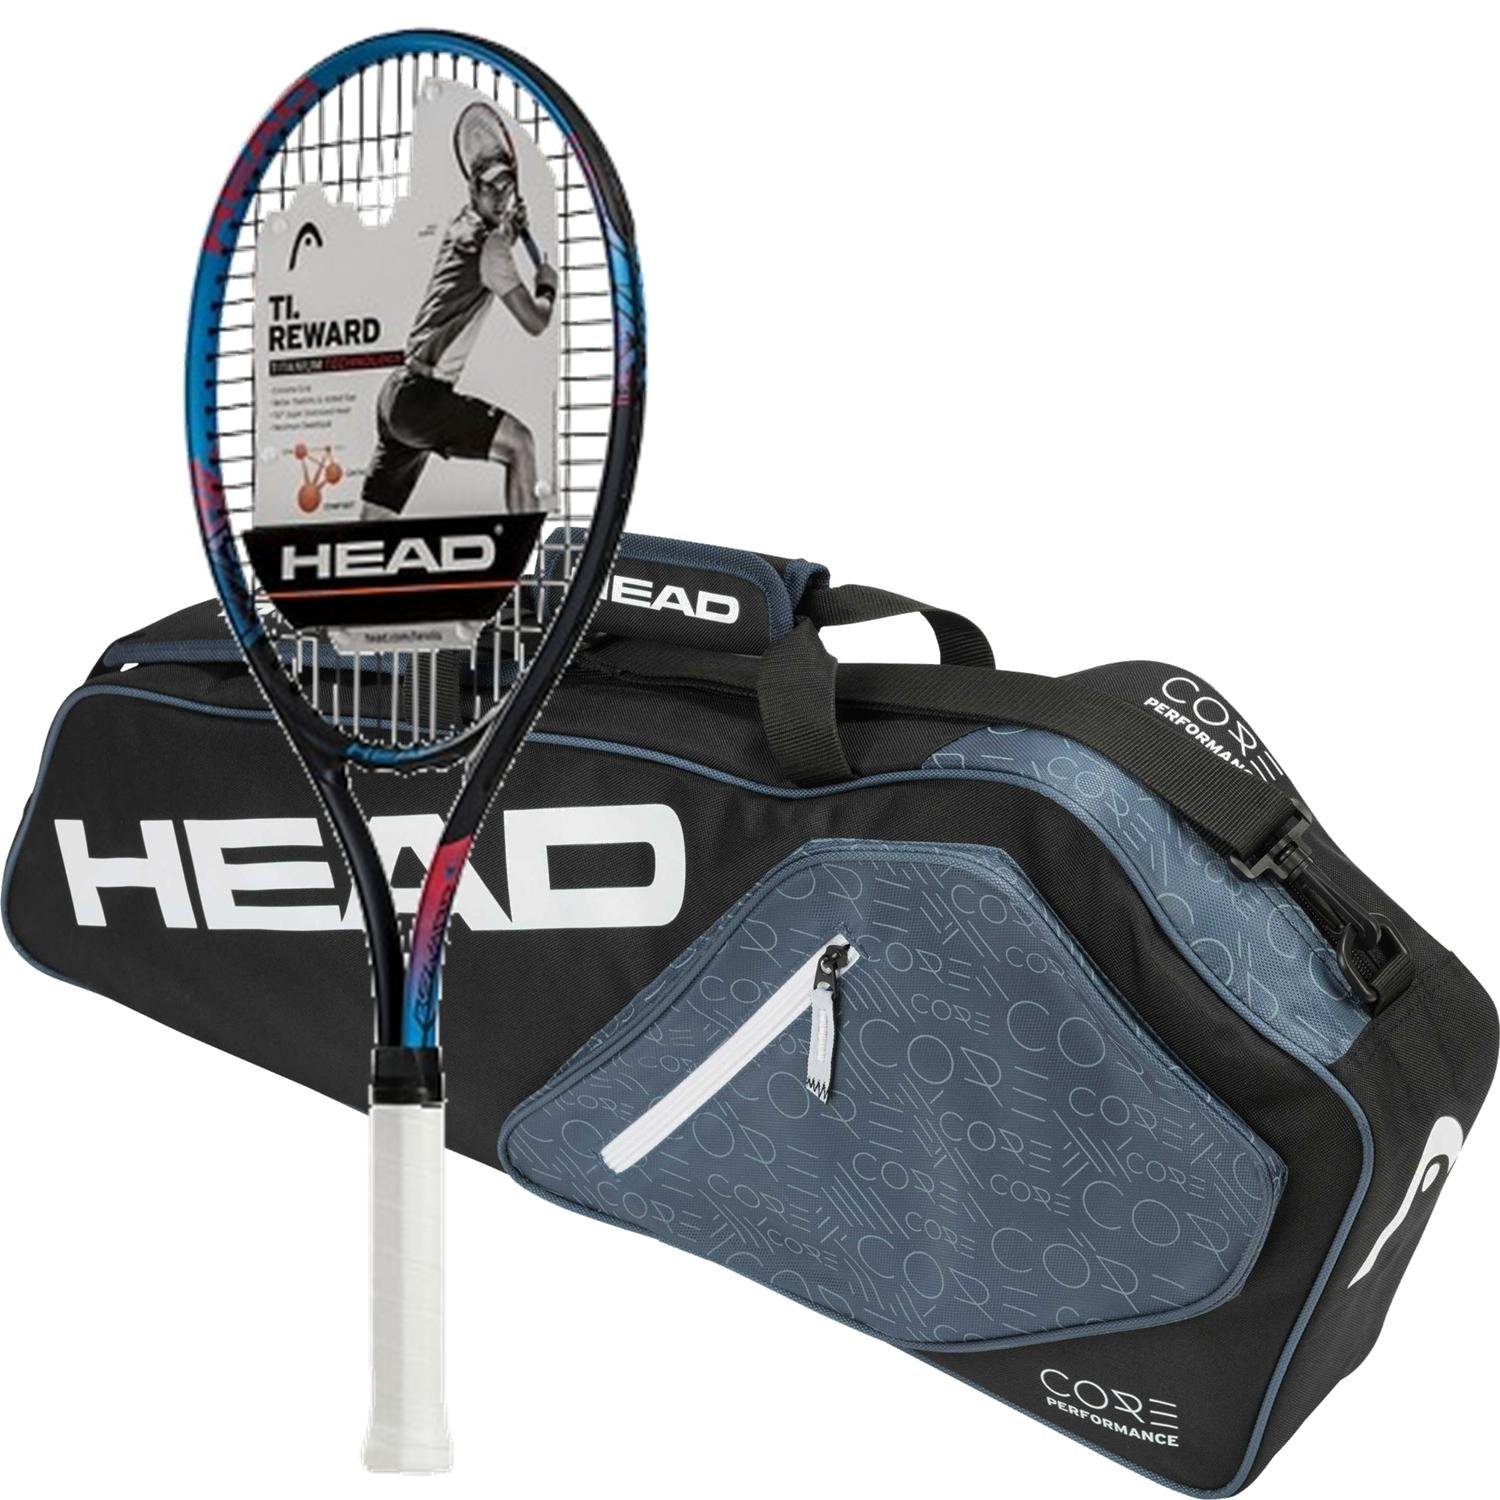 Amazon.com : Head Ti.Reward Pre-Strung Tennis Racquet ...